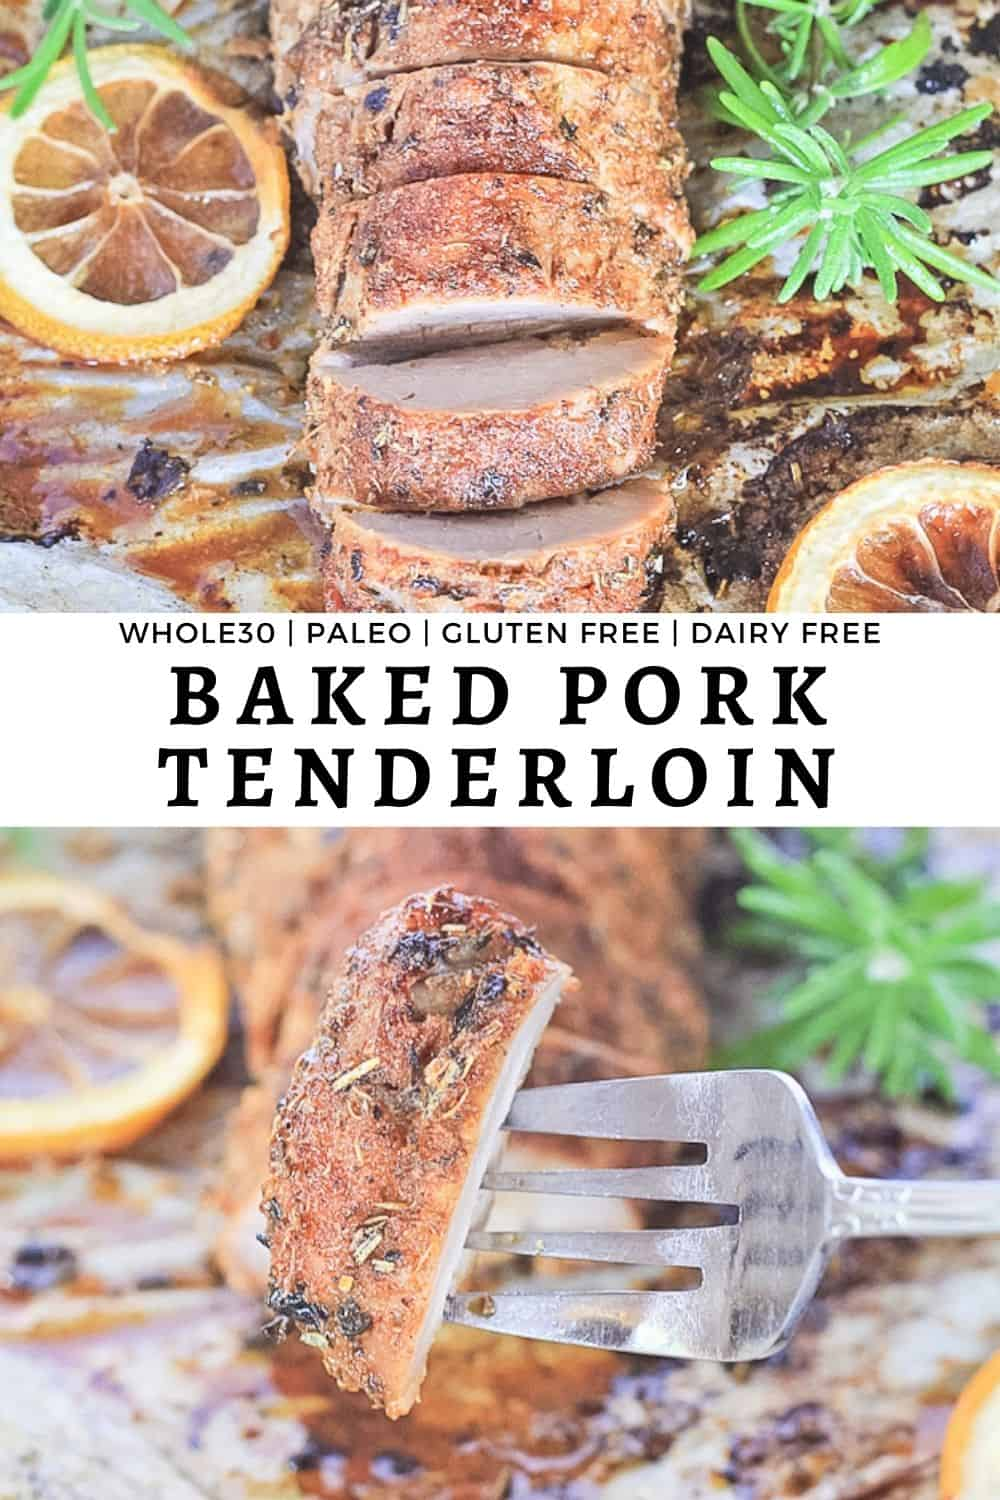 Baked pork tenderloin covered in a spice rub on a sheet pan with rosemary and lemons.